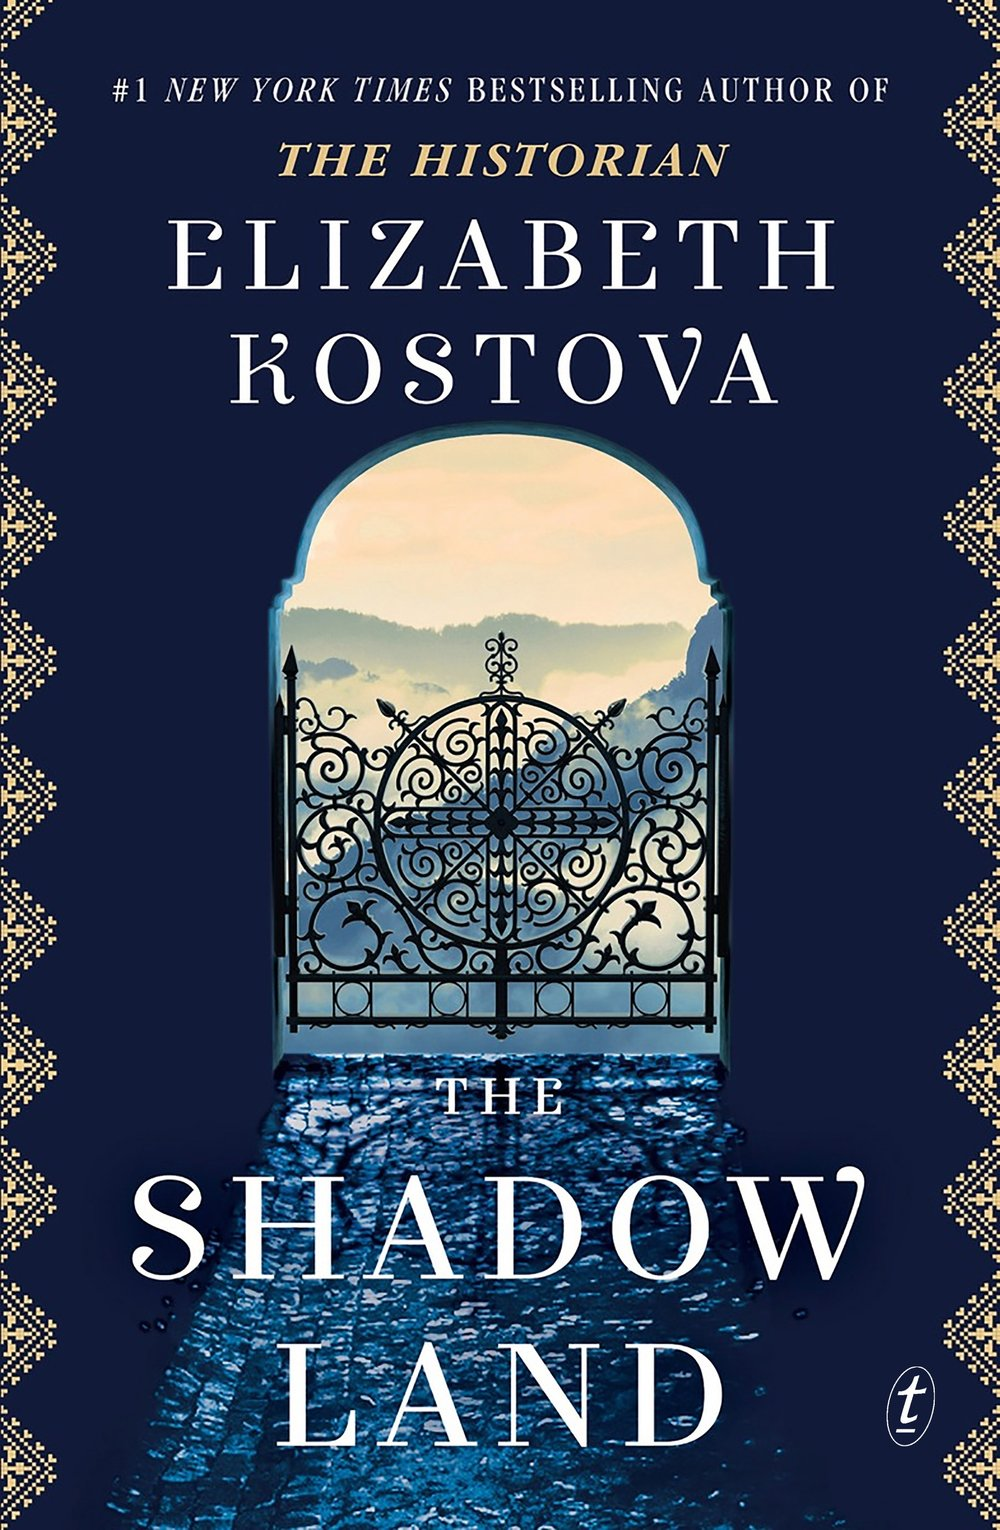 the shadow land by elizabeth kostova - Alexandra Boyd has travelled to Bulgaria hoping to salve the wounds left by the loss of her beloved brother. But a luggage mix-up soon after she arrives finds her holding an urn filled with human ashes.As Alexandra sets out to return the precious item to its owners she finds ever more obstacles in her path, even as her determination grows greater - and the mystery behind the significance of the urn deepens. Soon she will realise that this object is tied to the very darkest moments in the nation's history, and that the stakes behind seeing it safely returned are higher than she could ever have imagined.Elizabeth Kostova's new novel is a tale of immense scope that delves into the horrors of a century and traverses the culture and landscape of this mysterious country. Suspenseful and beautifully written, it explores the power of stories and the hope and meaning that can sometimes be found in the aftermath of loss.